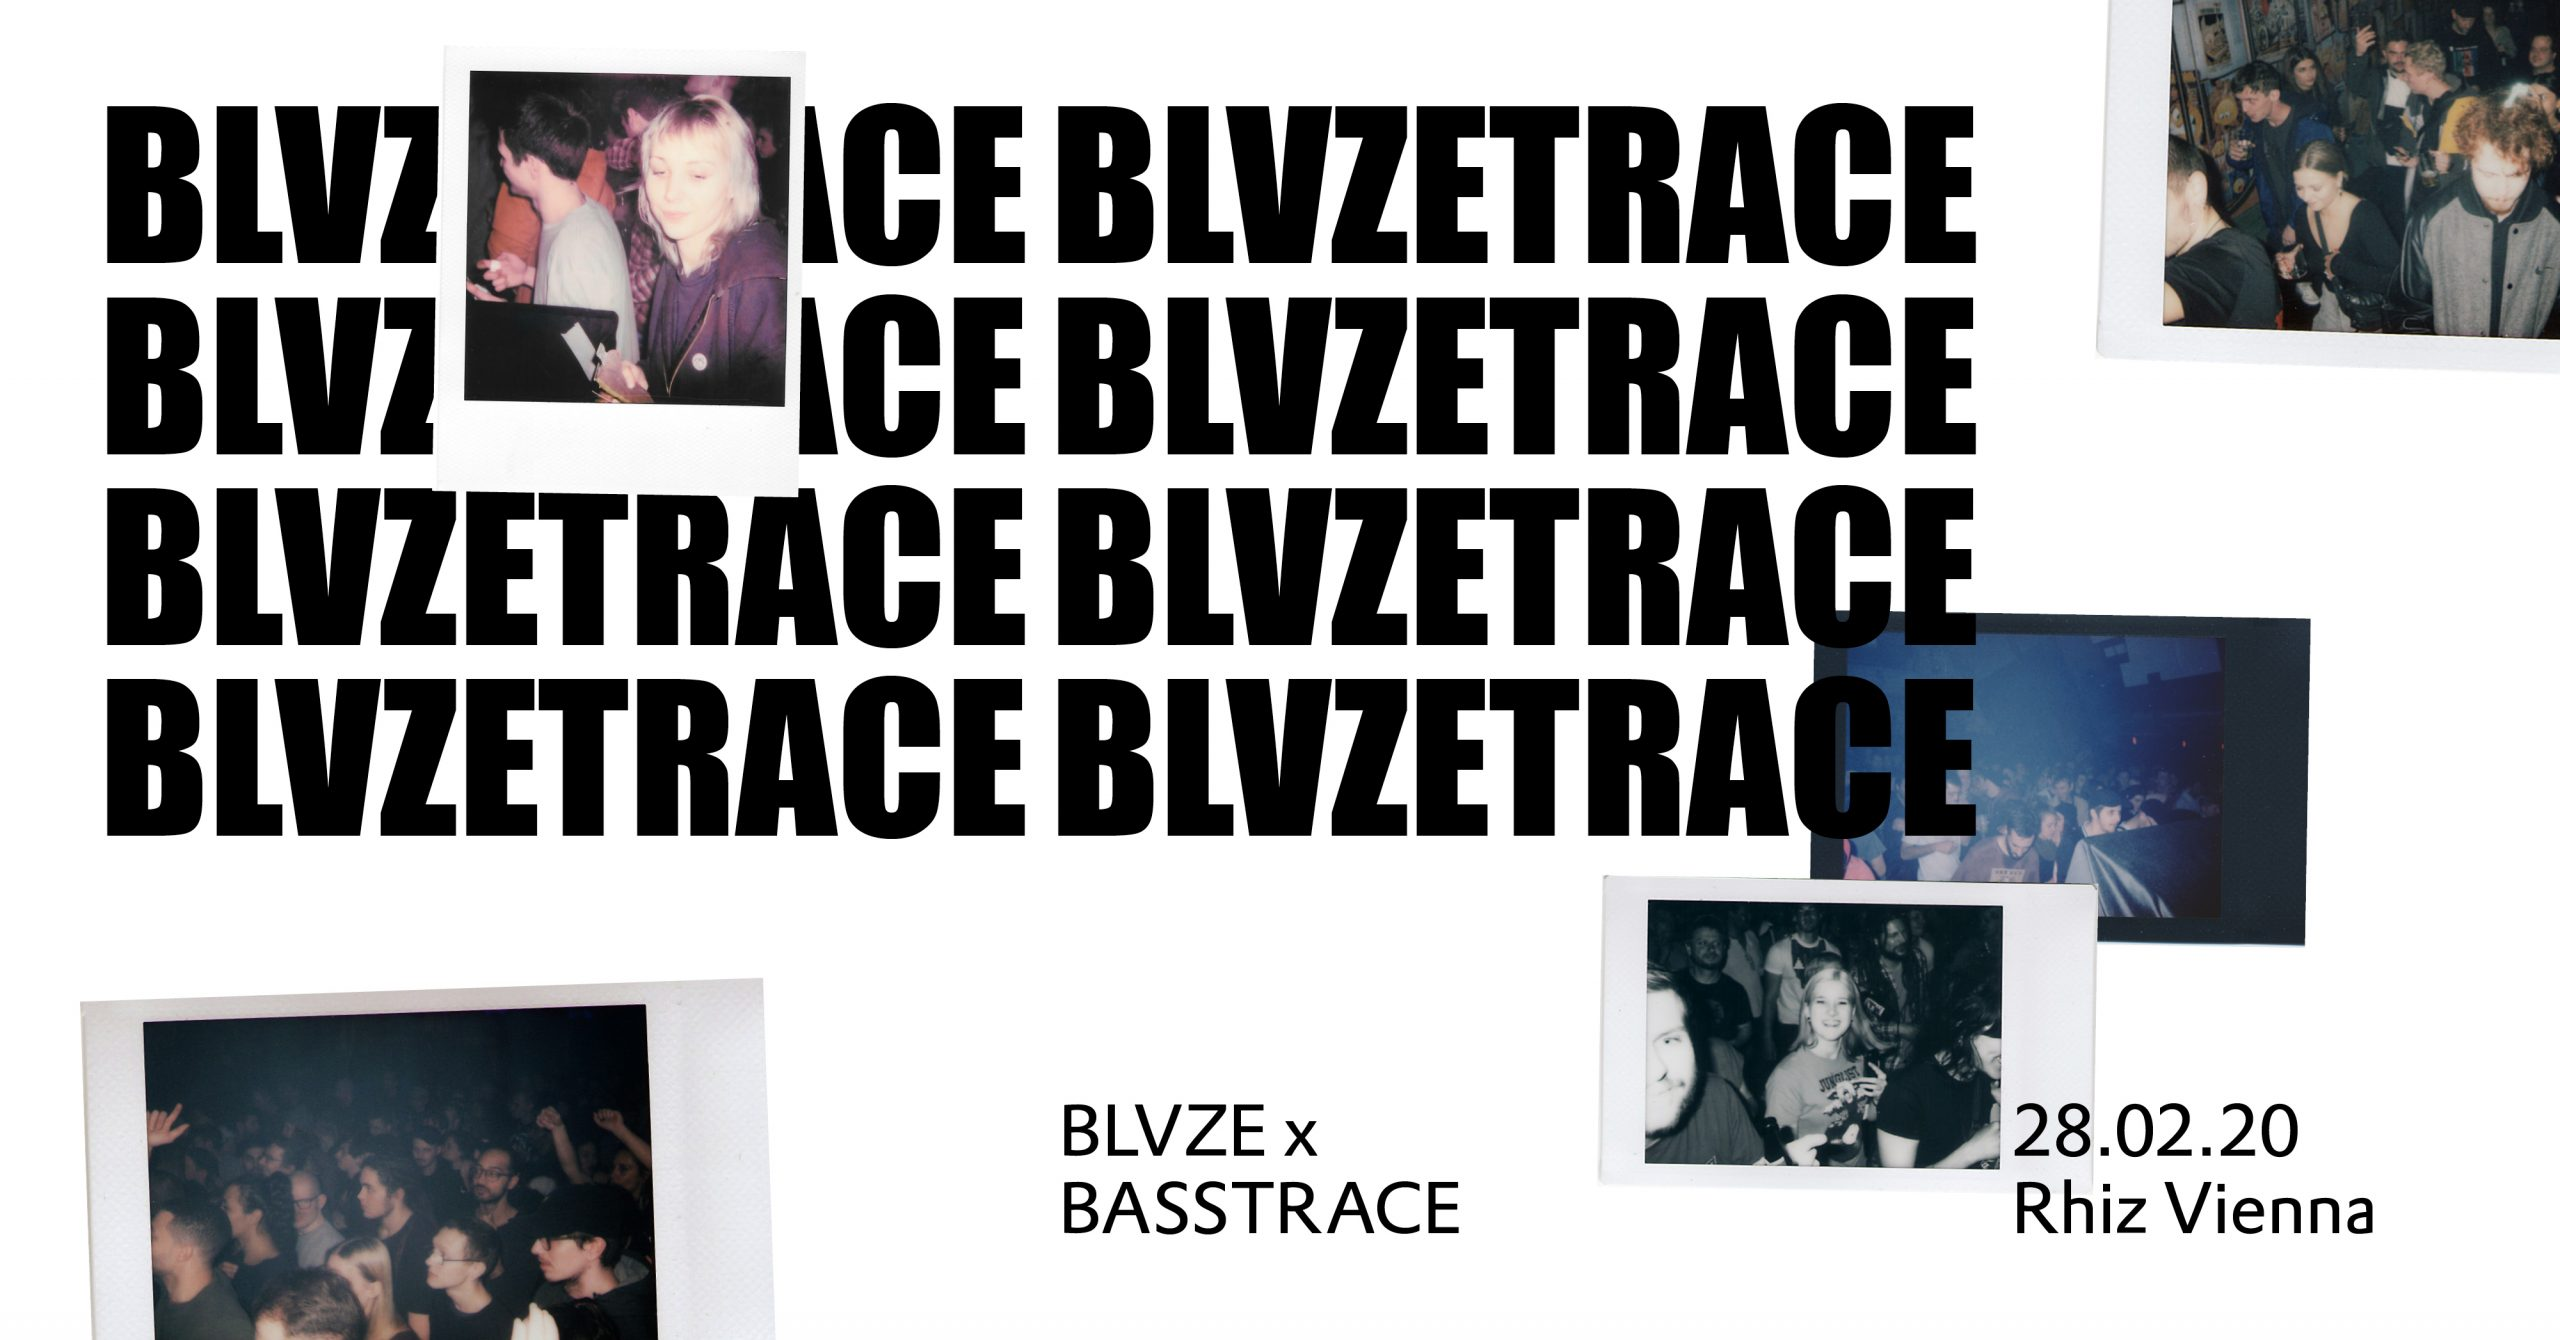 BLVZE X Basstrace w/ AGO, SIR HISS am 28. February 2020 @ Rhiz.